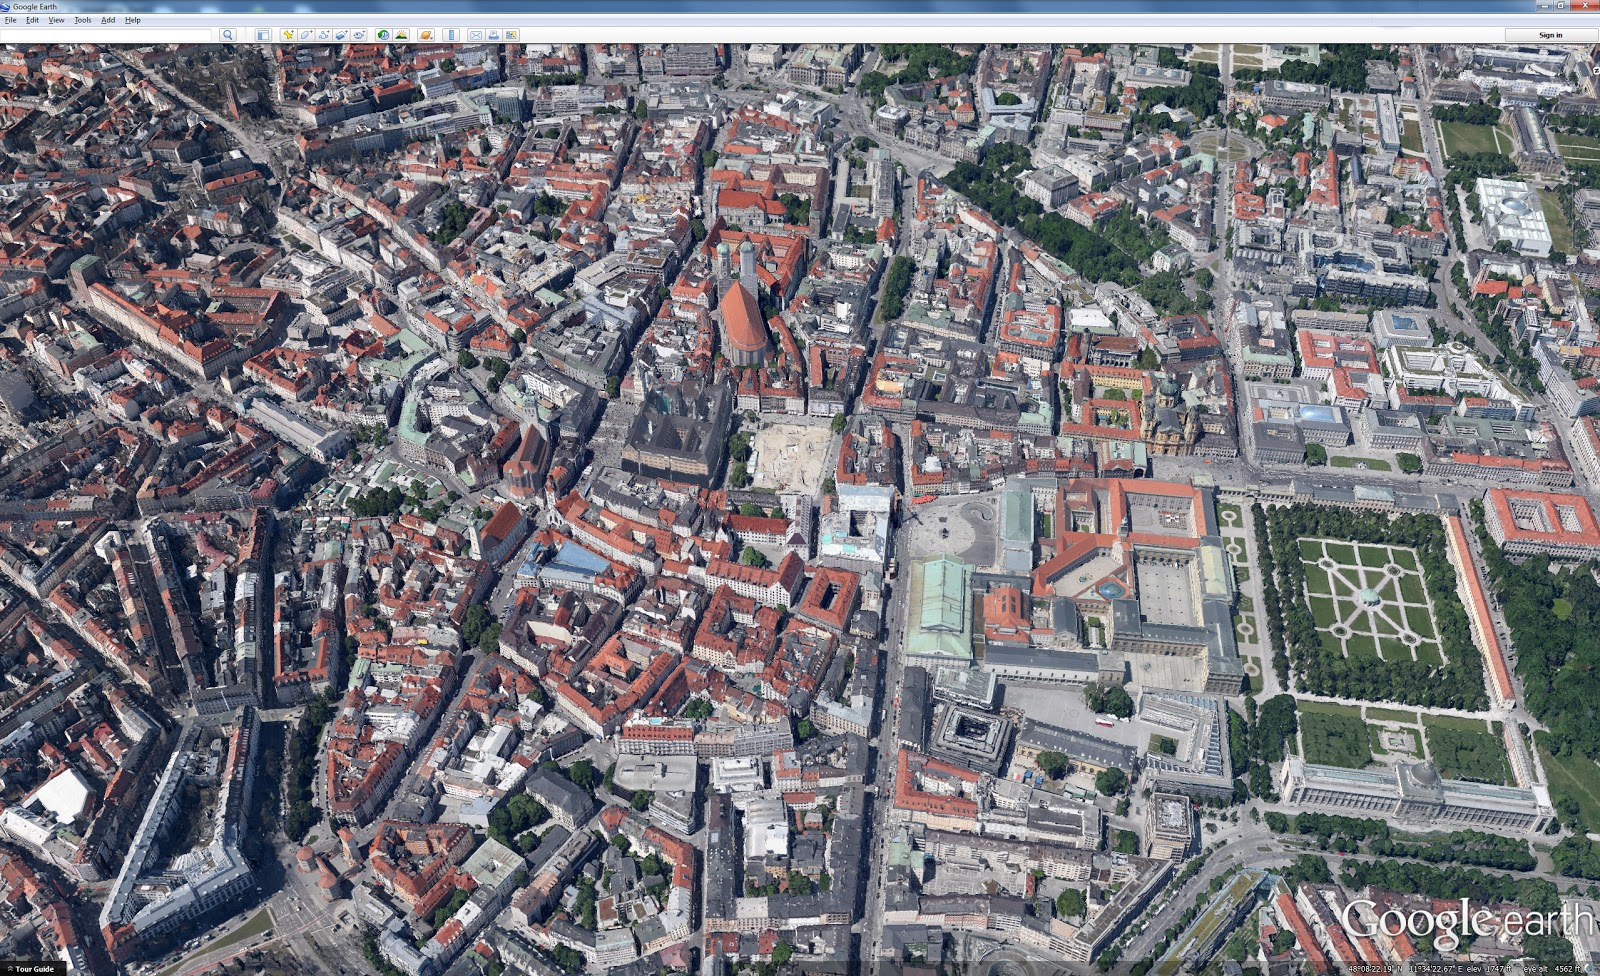 Google Earth 7 Gets 11 3D Cities and 11,000 Virtual Tours on download icons, download london tube map, download business maps, online maps, topographic maps, download bing maps,